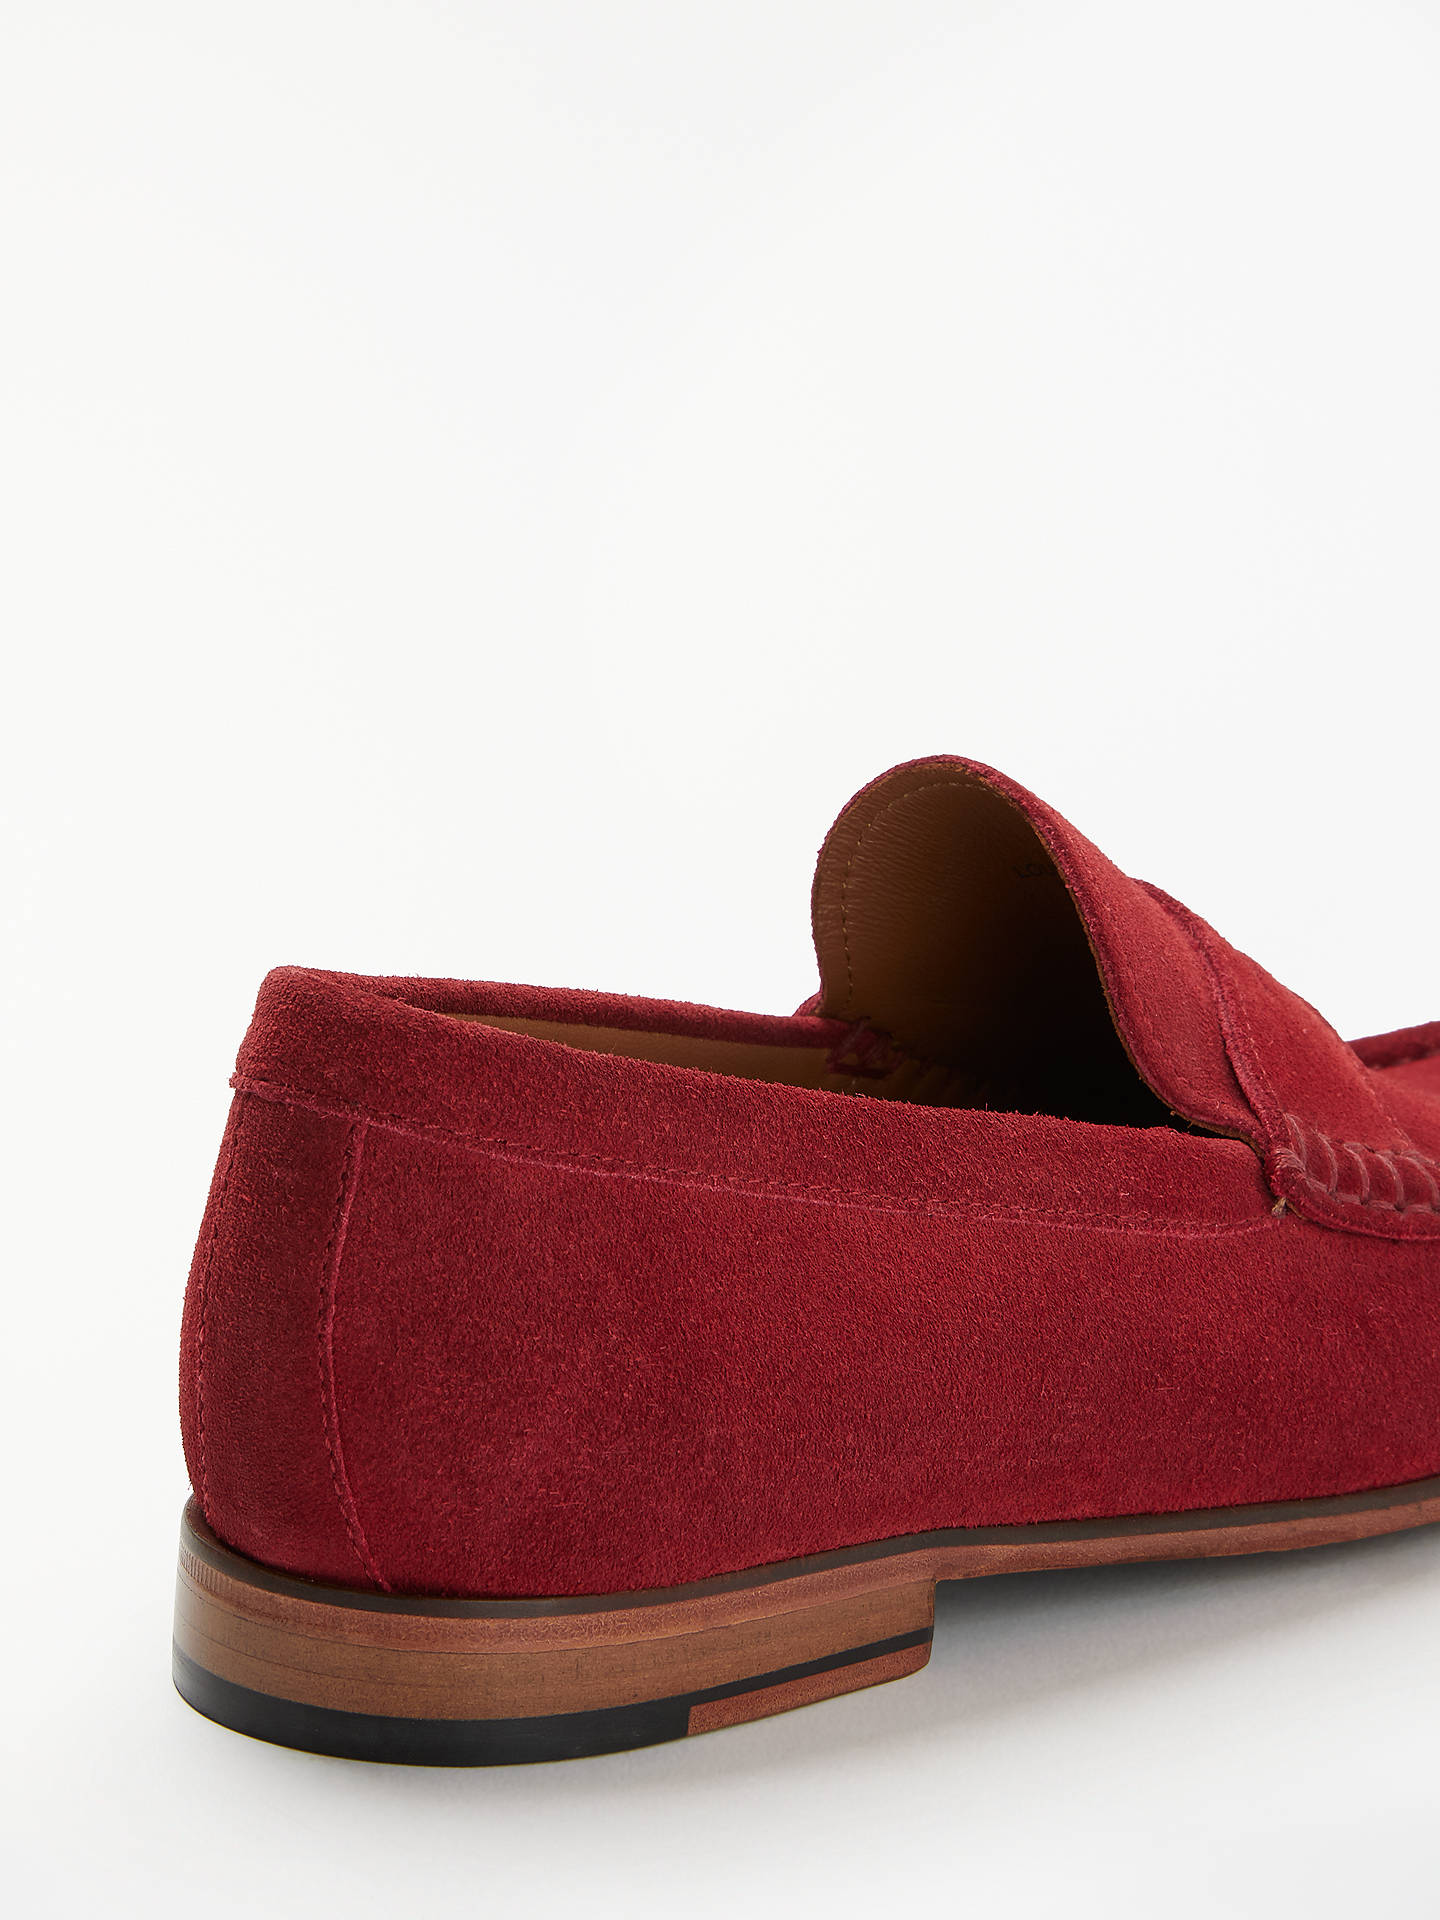 66bc83baa0a ... Buy John Lewis   Partners Louis Suede Penny Loafers